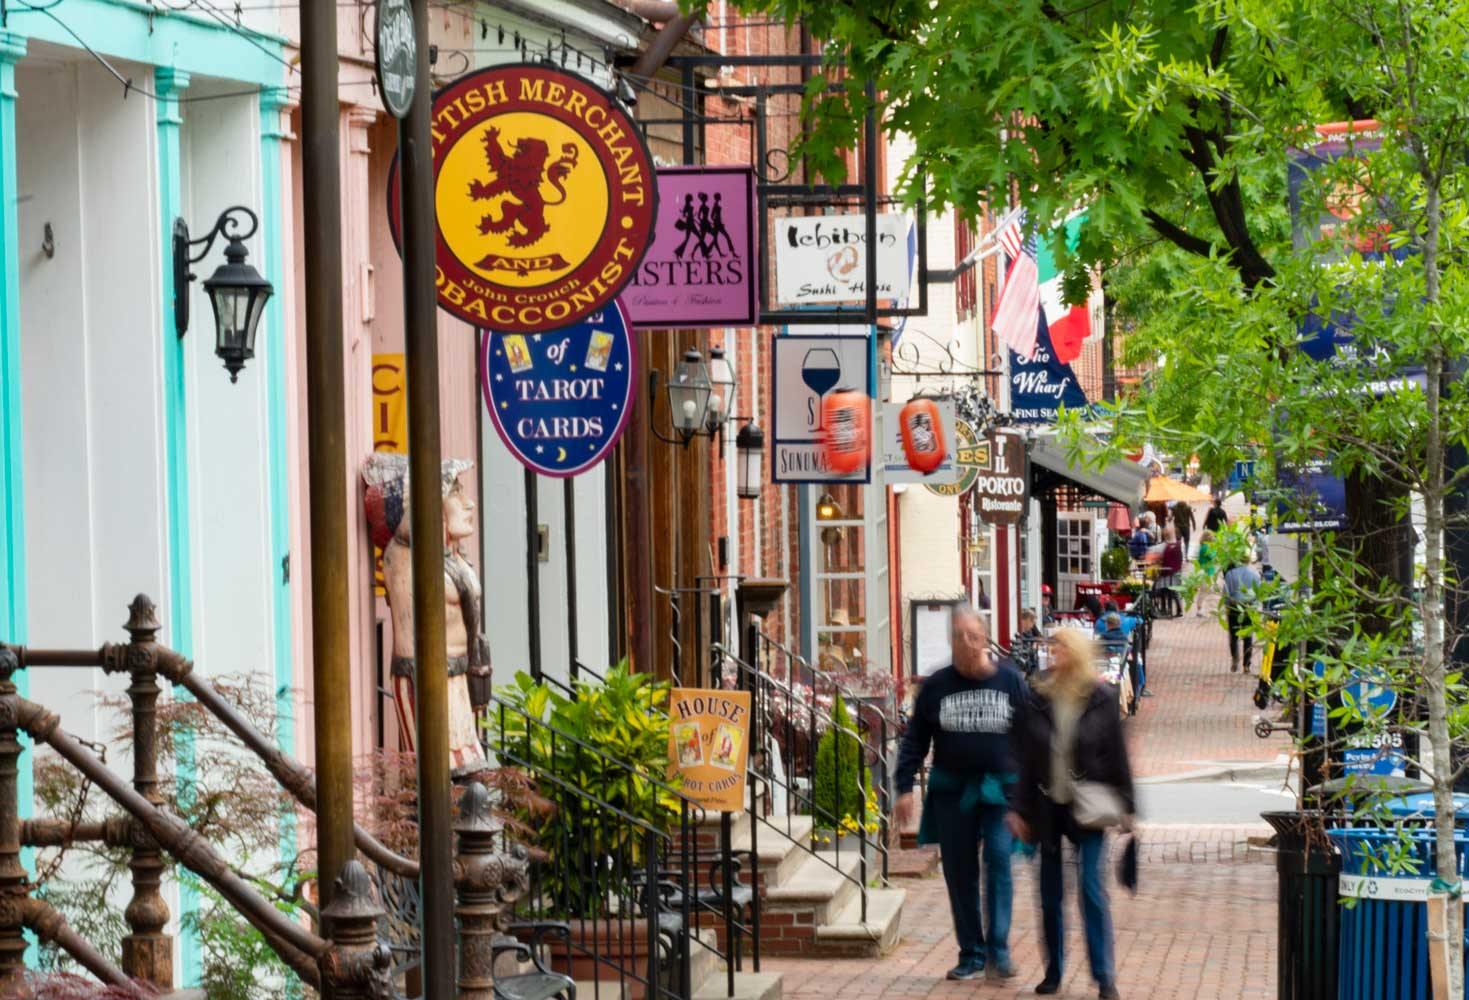 15 minutes to shopping and dining at Old Town Alexandria, VA